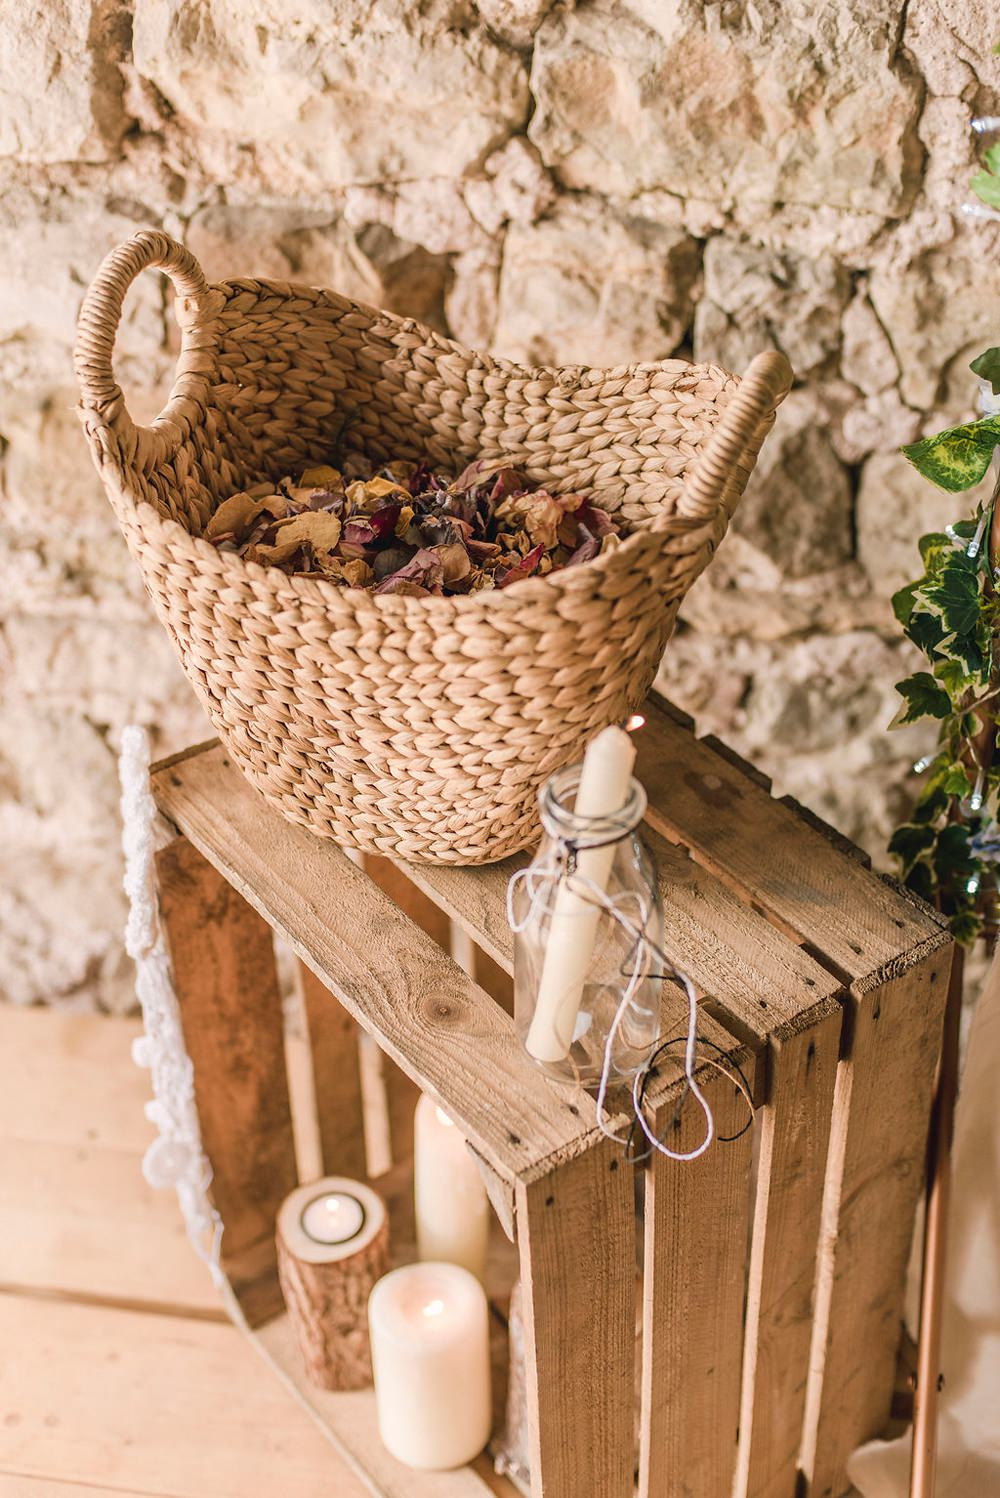 Decor Wooden Crate Petals Candles Basket Boho Woodland Wedding Ideas Camp Katur Emily Olivia Photography